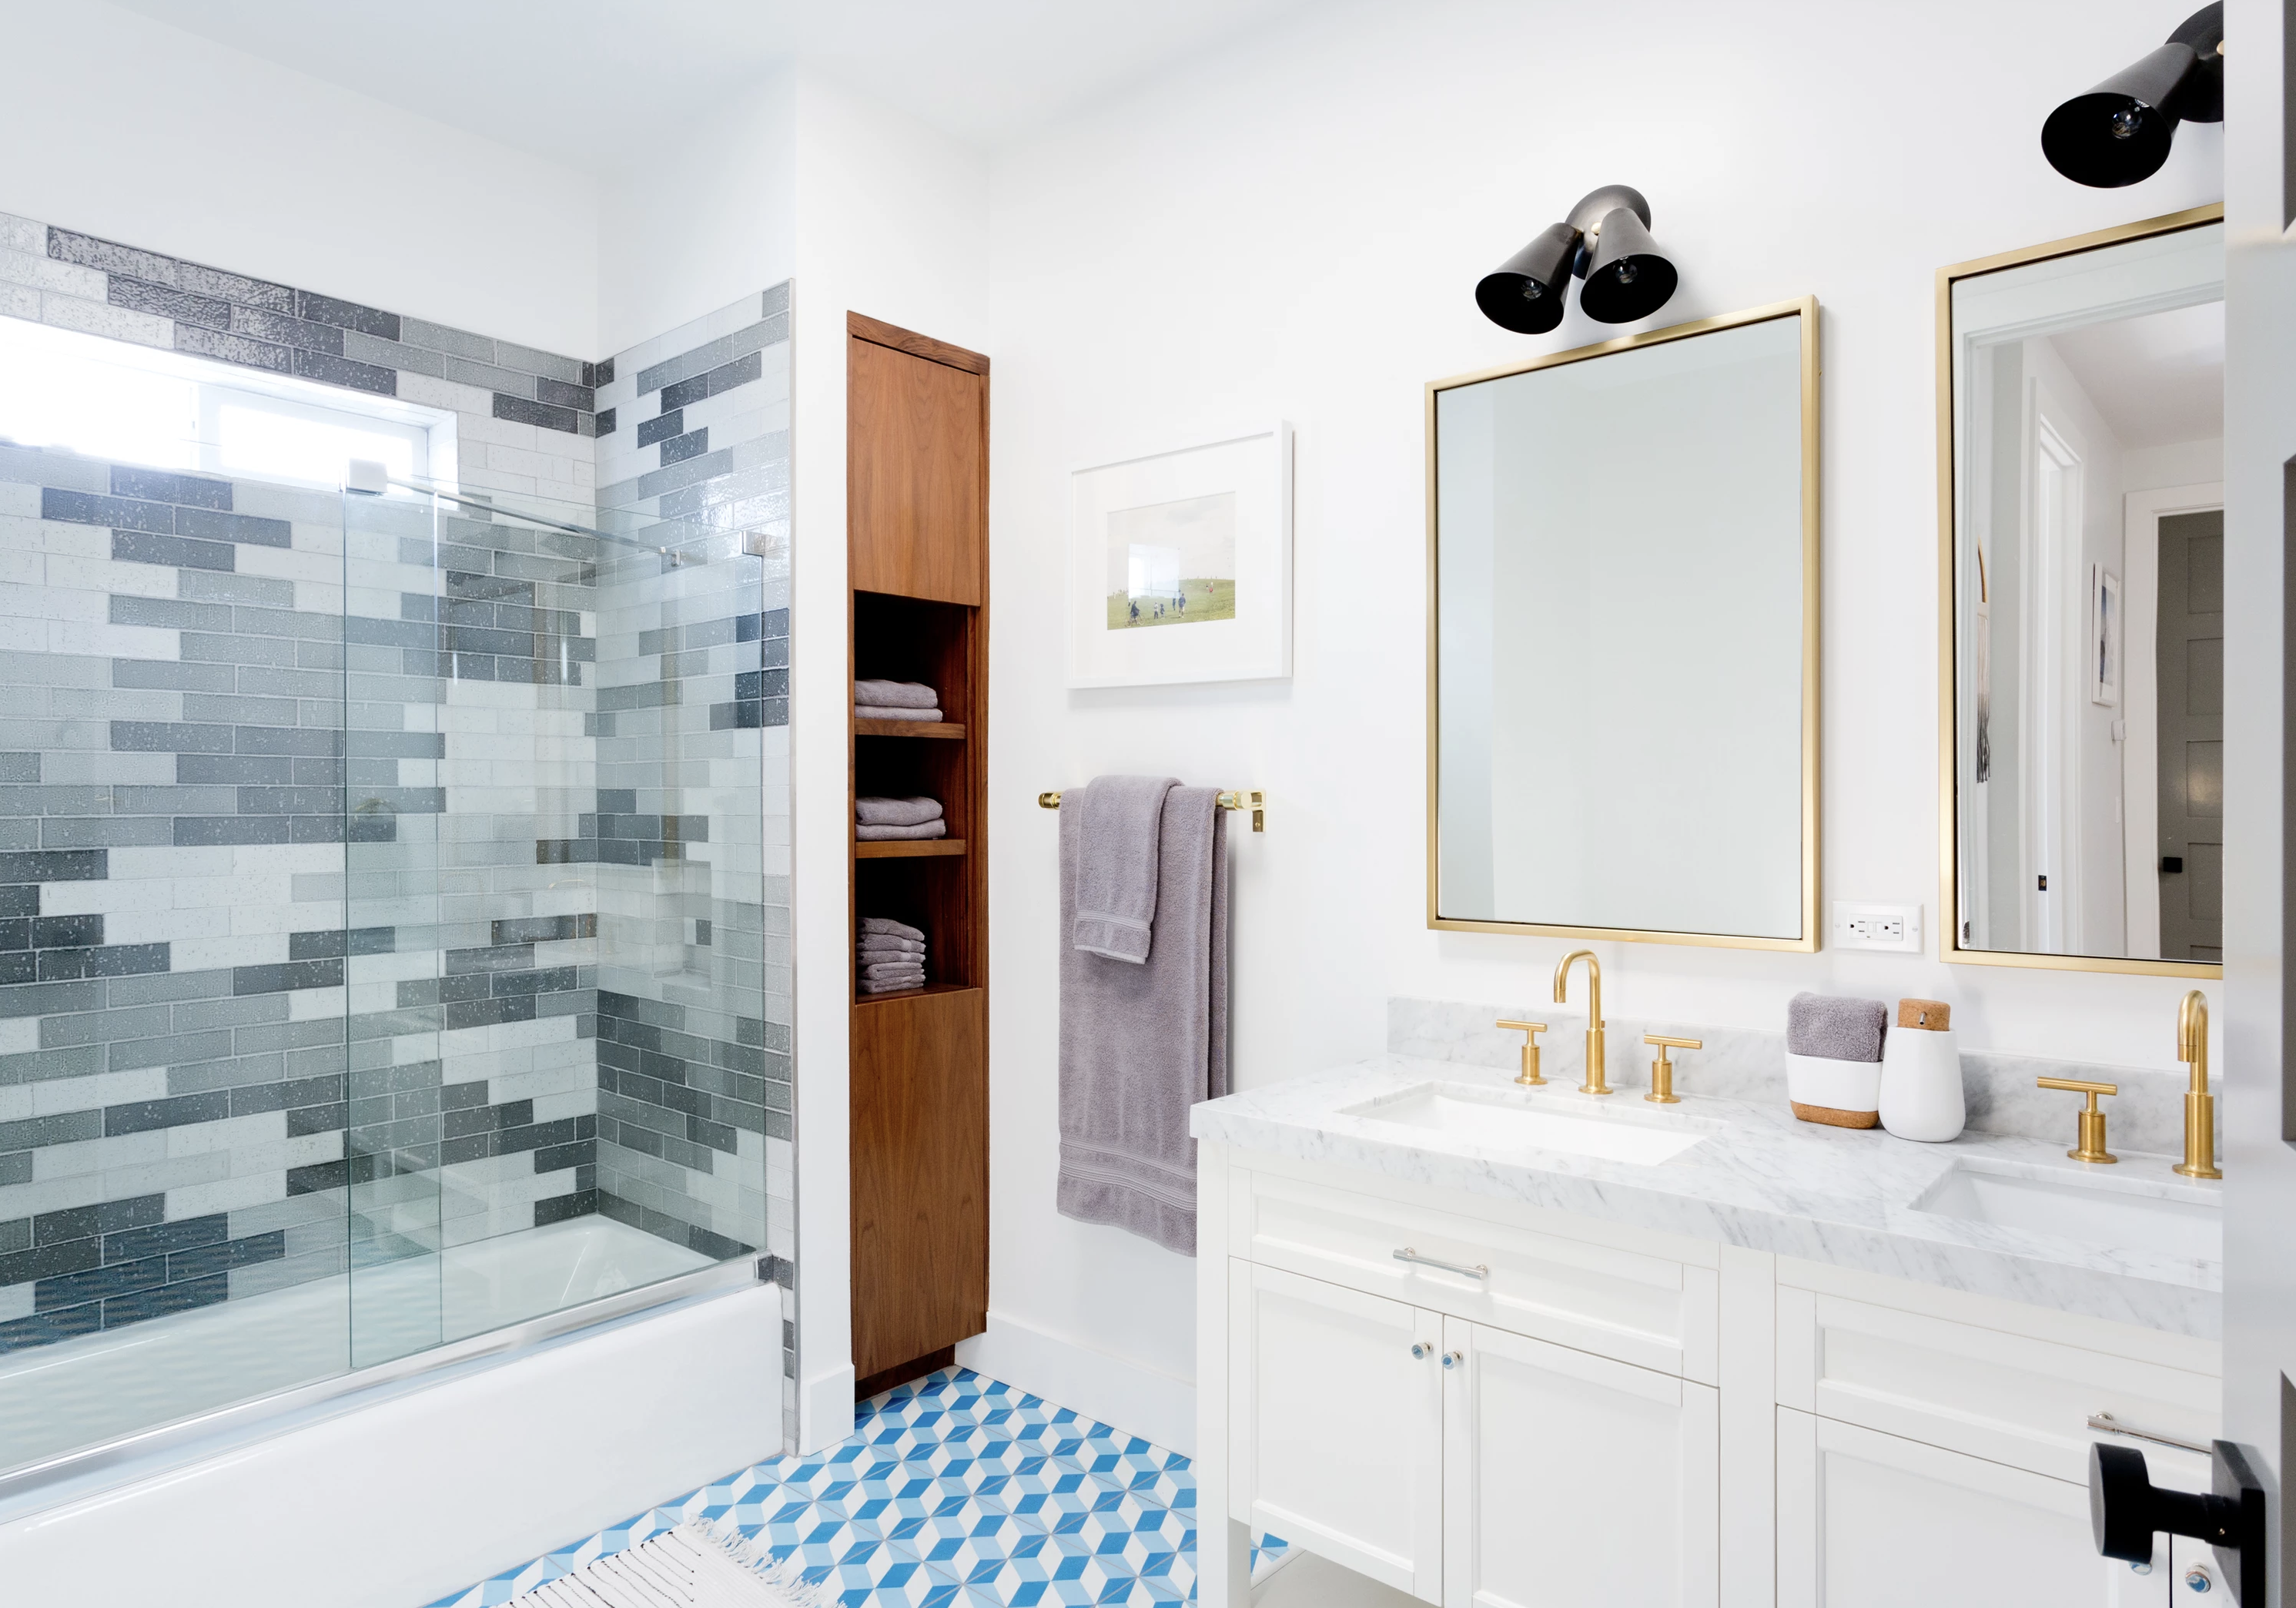 10 Best Subway Tile Bathroom Designs in 2018 - Subway Tile Ideas For Under Cabinet Kitchen Gl Tile Idea on tile patio furniture ideas, tile walls ideas, tile living room ideas, tile bath ideas, tile carpet ideas, tile stairs ideas, tile bathroom vanity ideas, tile fireplaces ideas, tile bathtubs ideas, tile dining room ideas, tile wood flooring ideas, tile paint ideas, tile floors ideas, tile siding ideas,